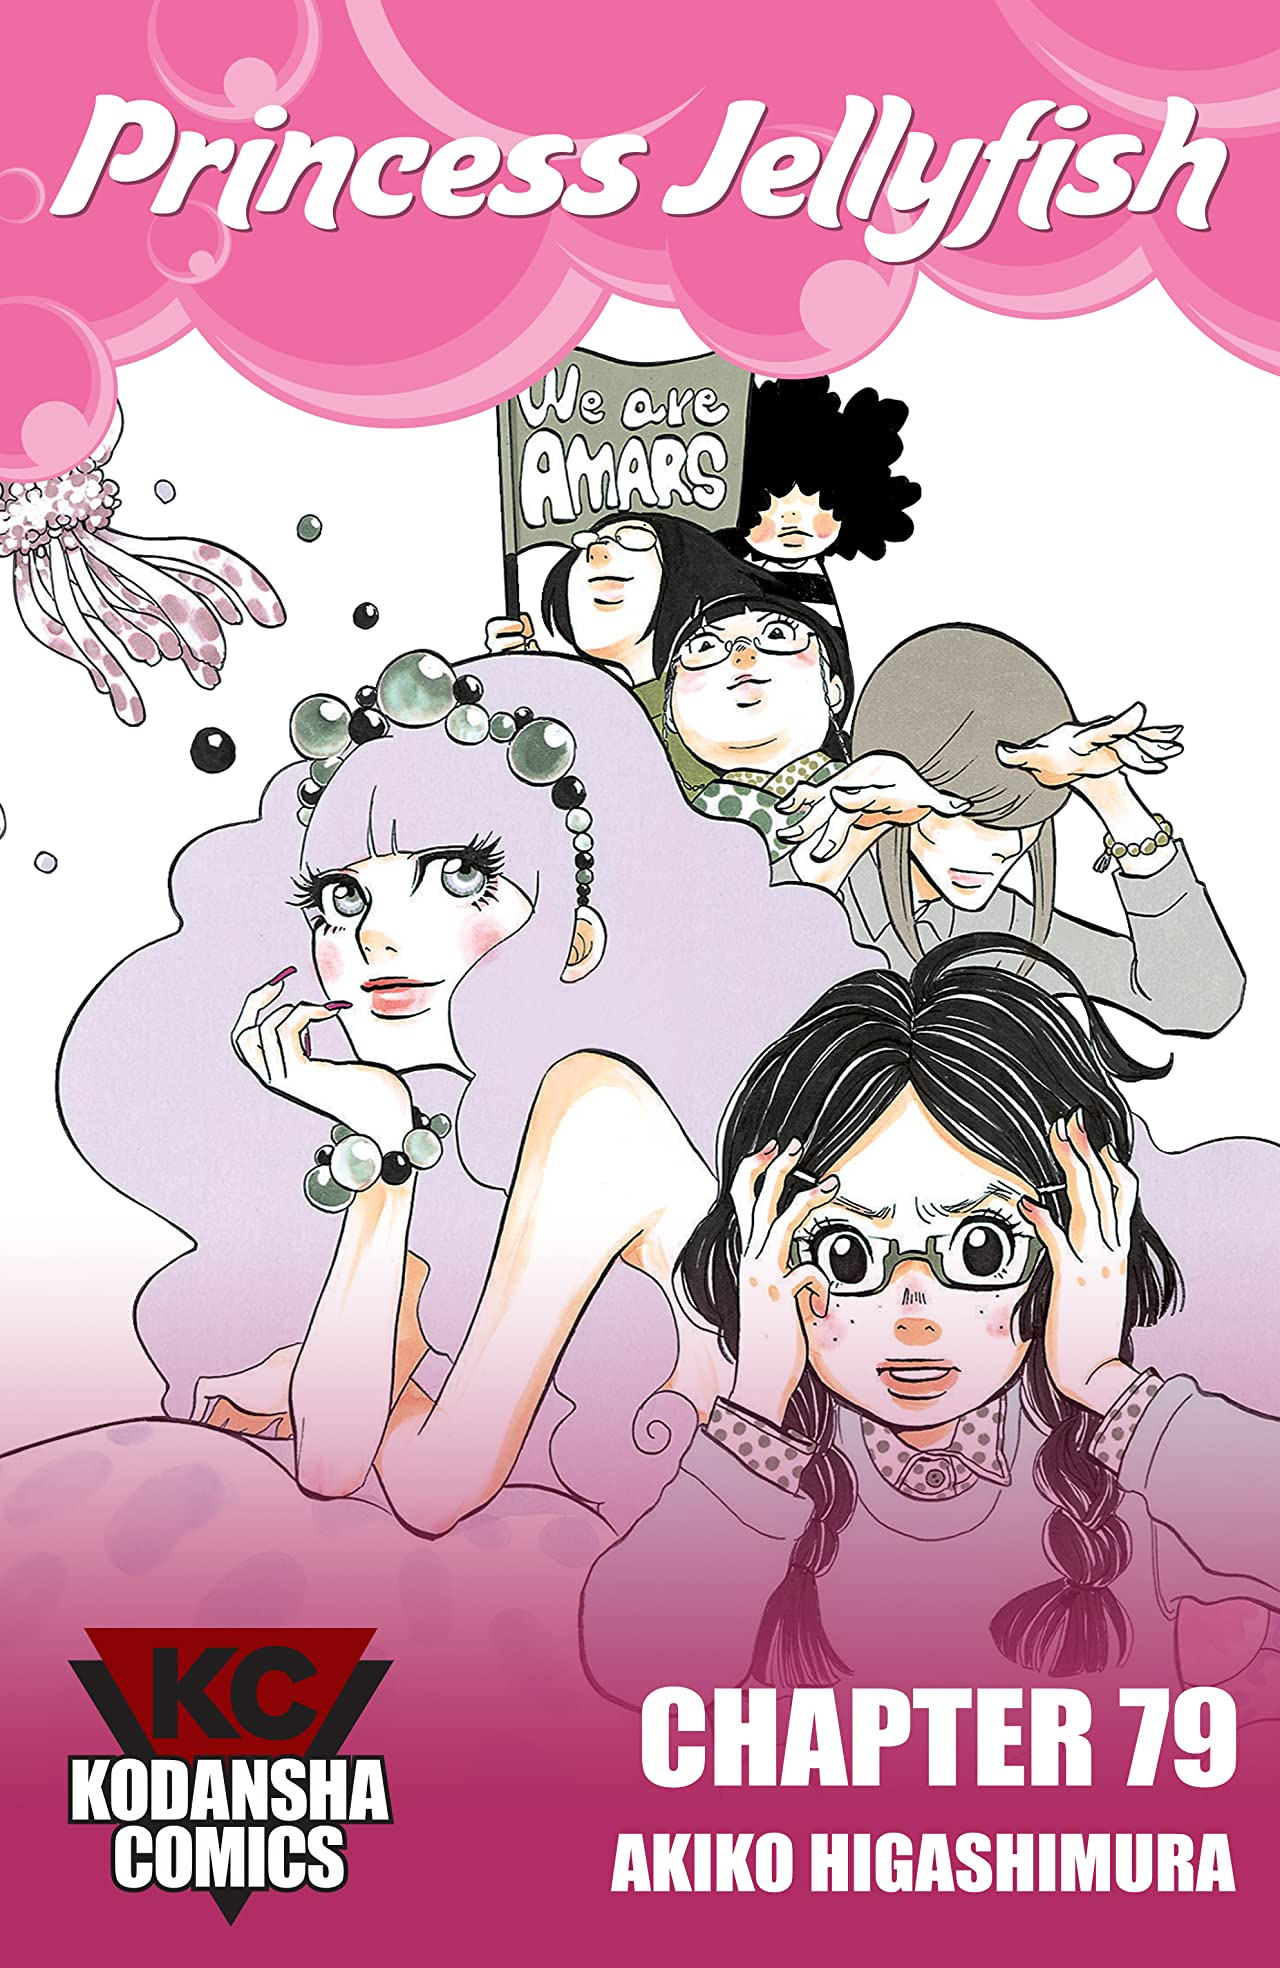 Princess Jellyfish #79